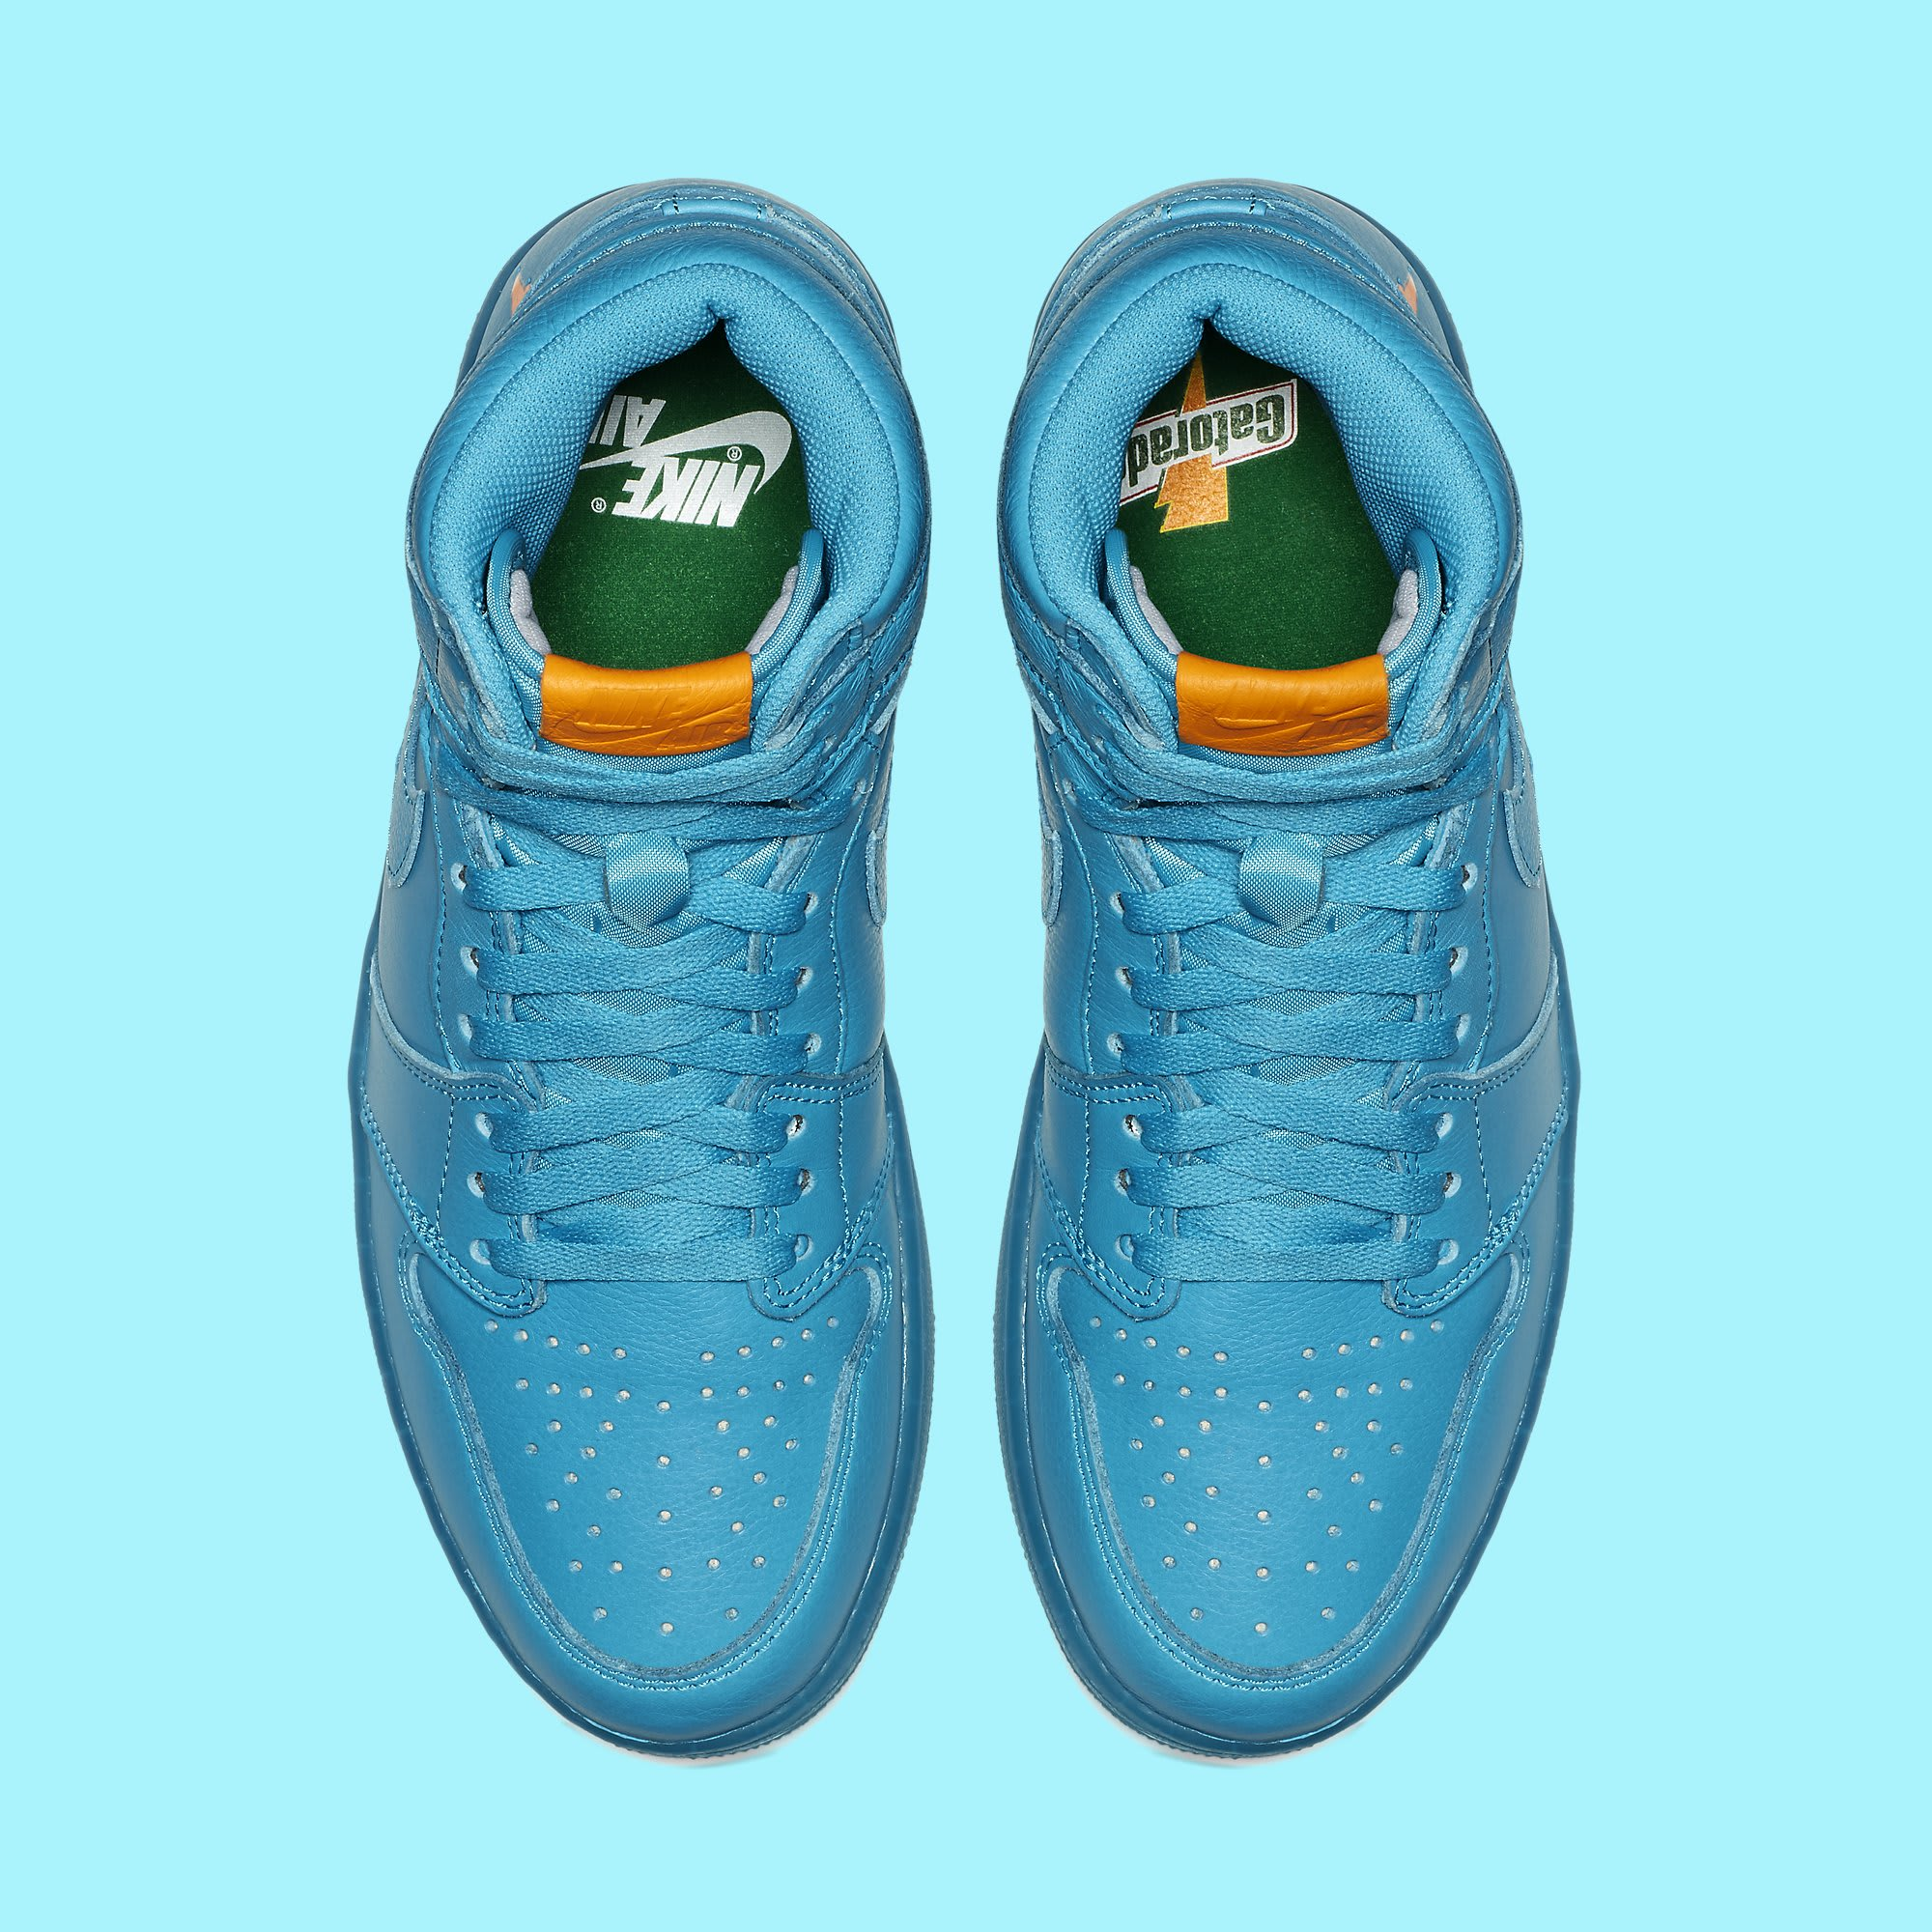 Air Jordan 1 High Gatorade Blue Lagoon AJ5997-455